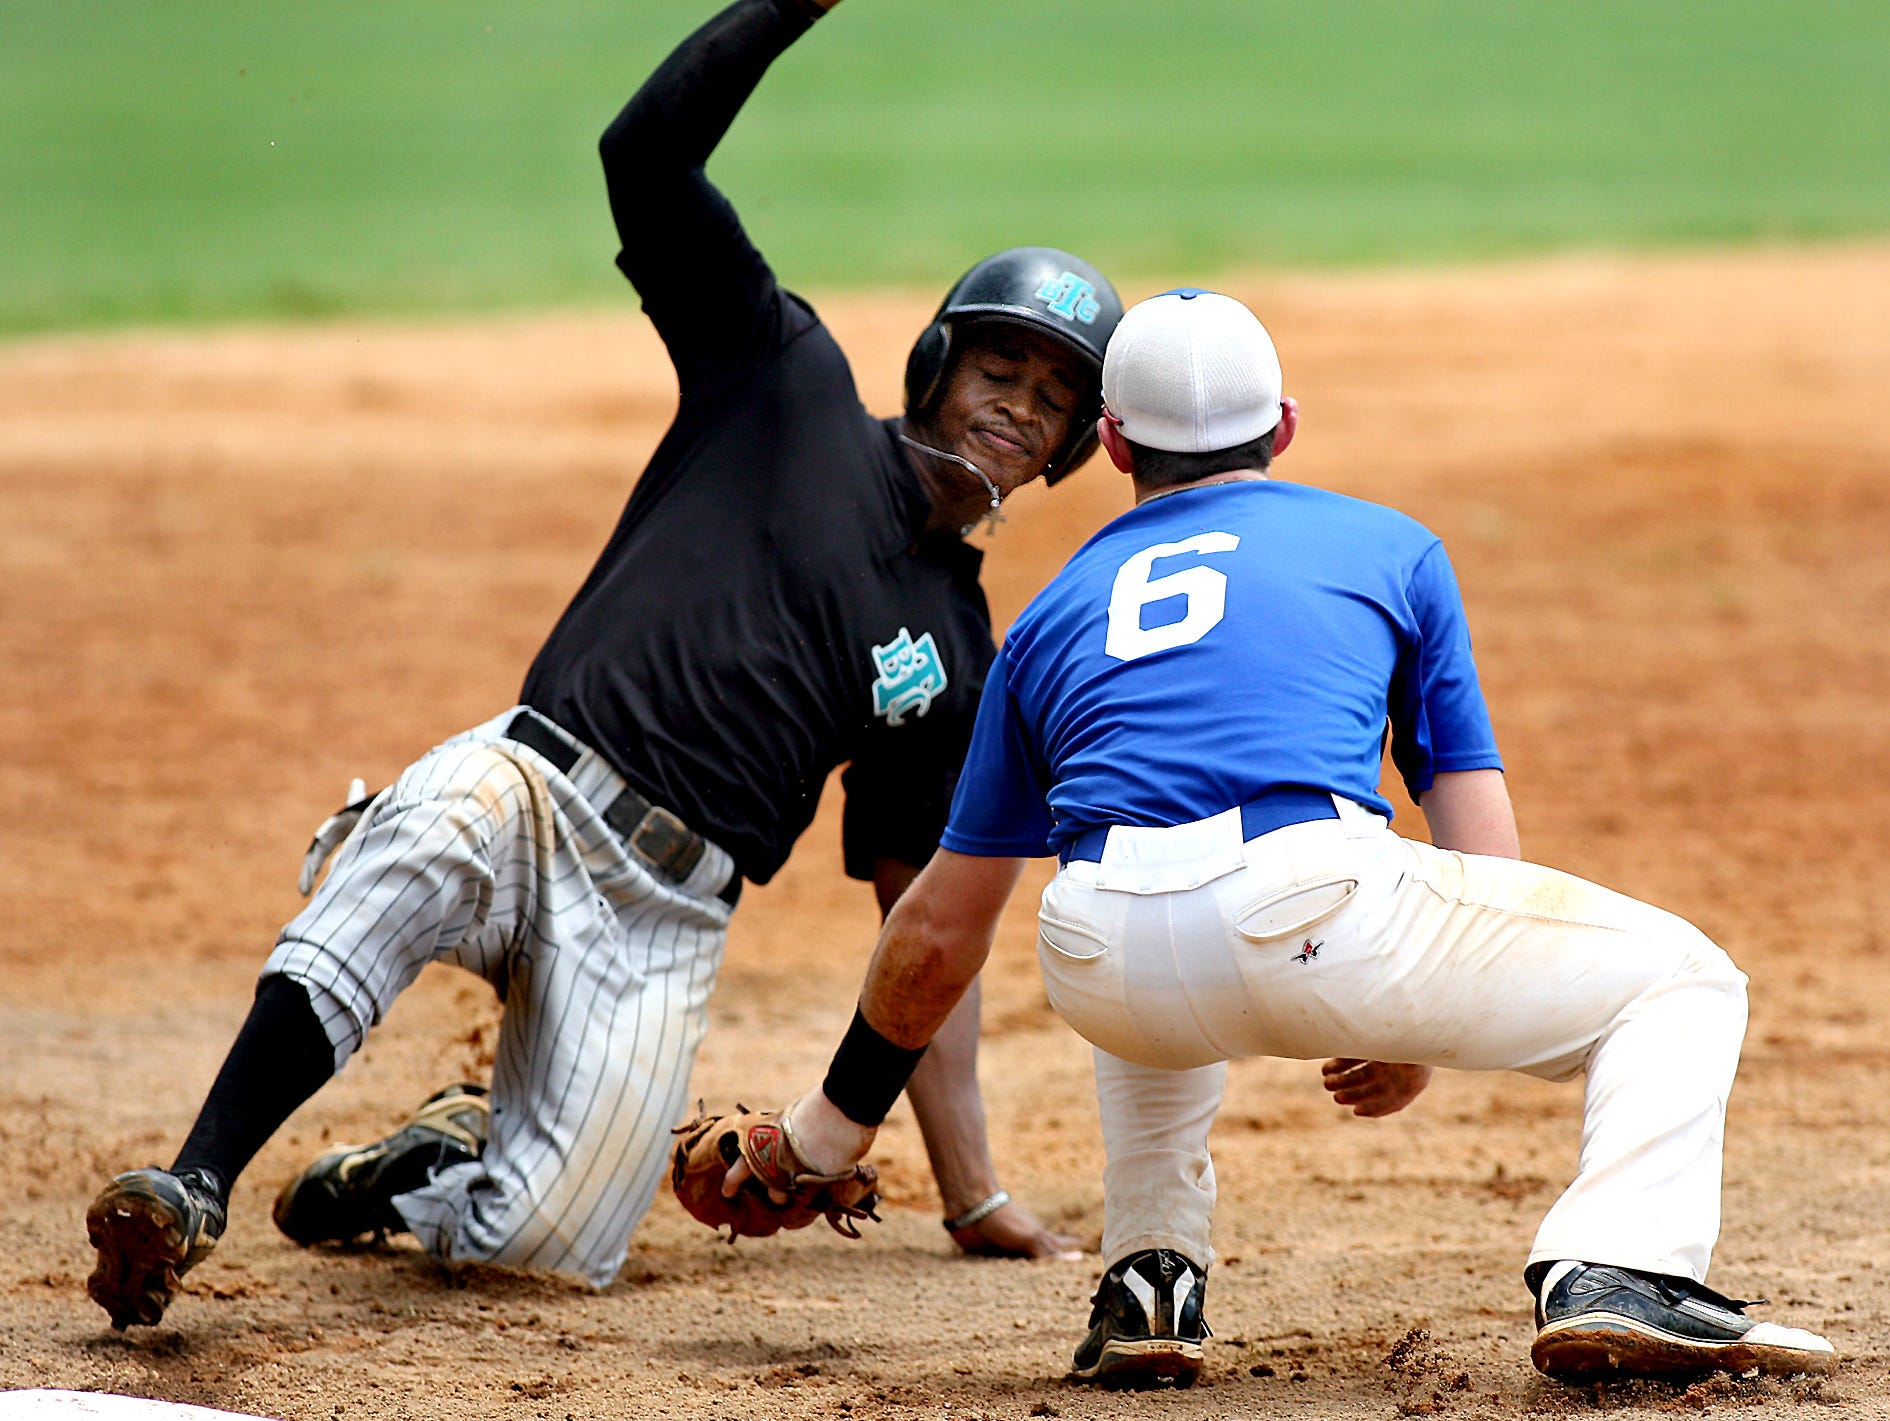 Former Rickards outfielder Mallex Smith was a first-team All-Big Bend pick in 2011, the same year he helped Tallahassee Baseball Club win a national title. Smith is now at AA in the Atlanta Braves organization.